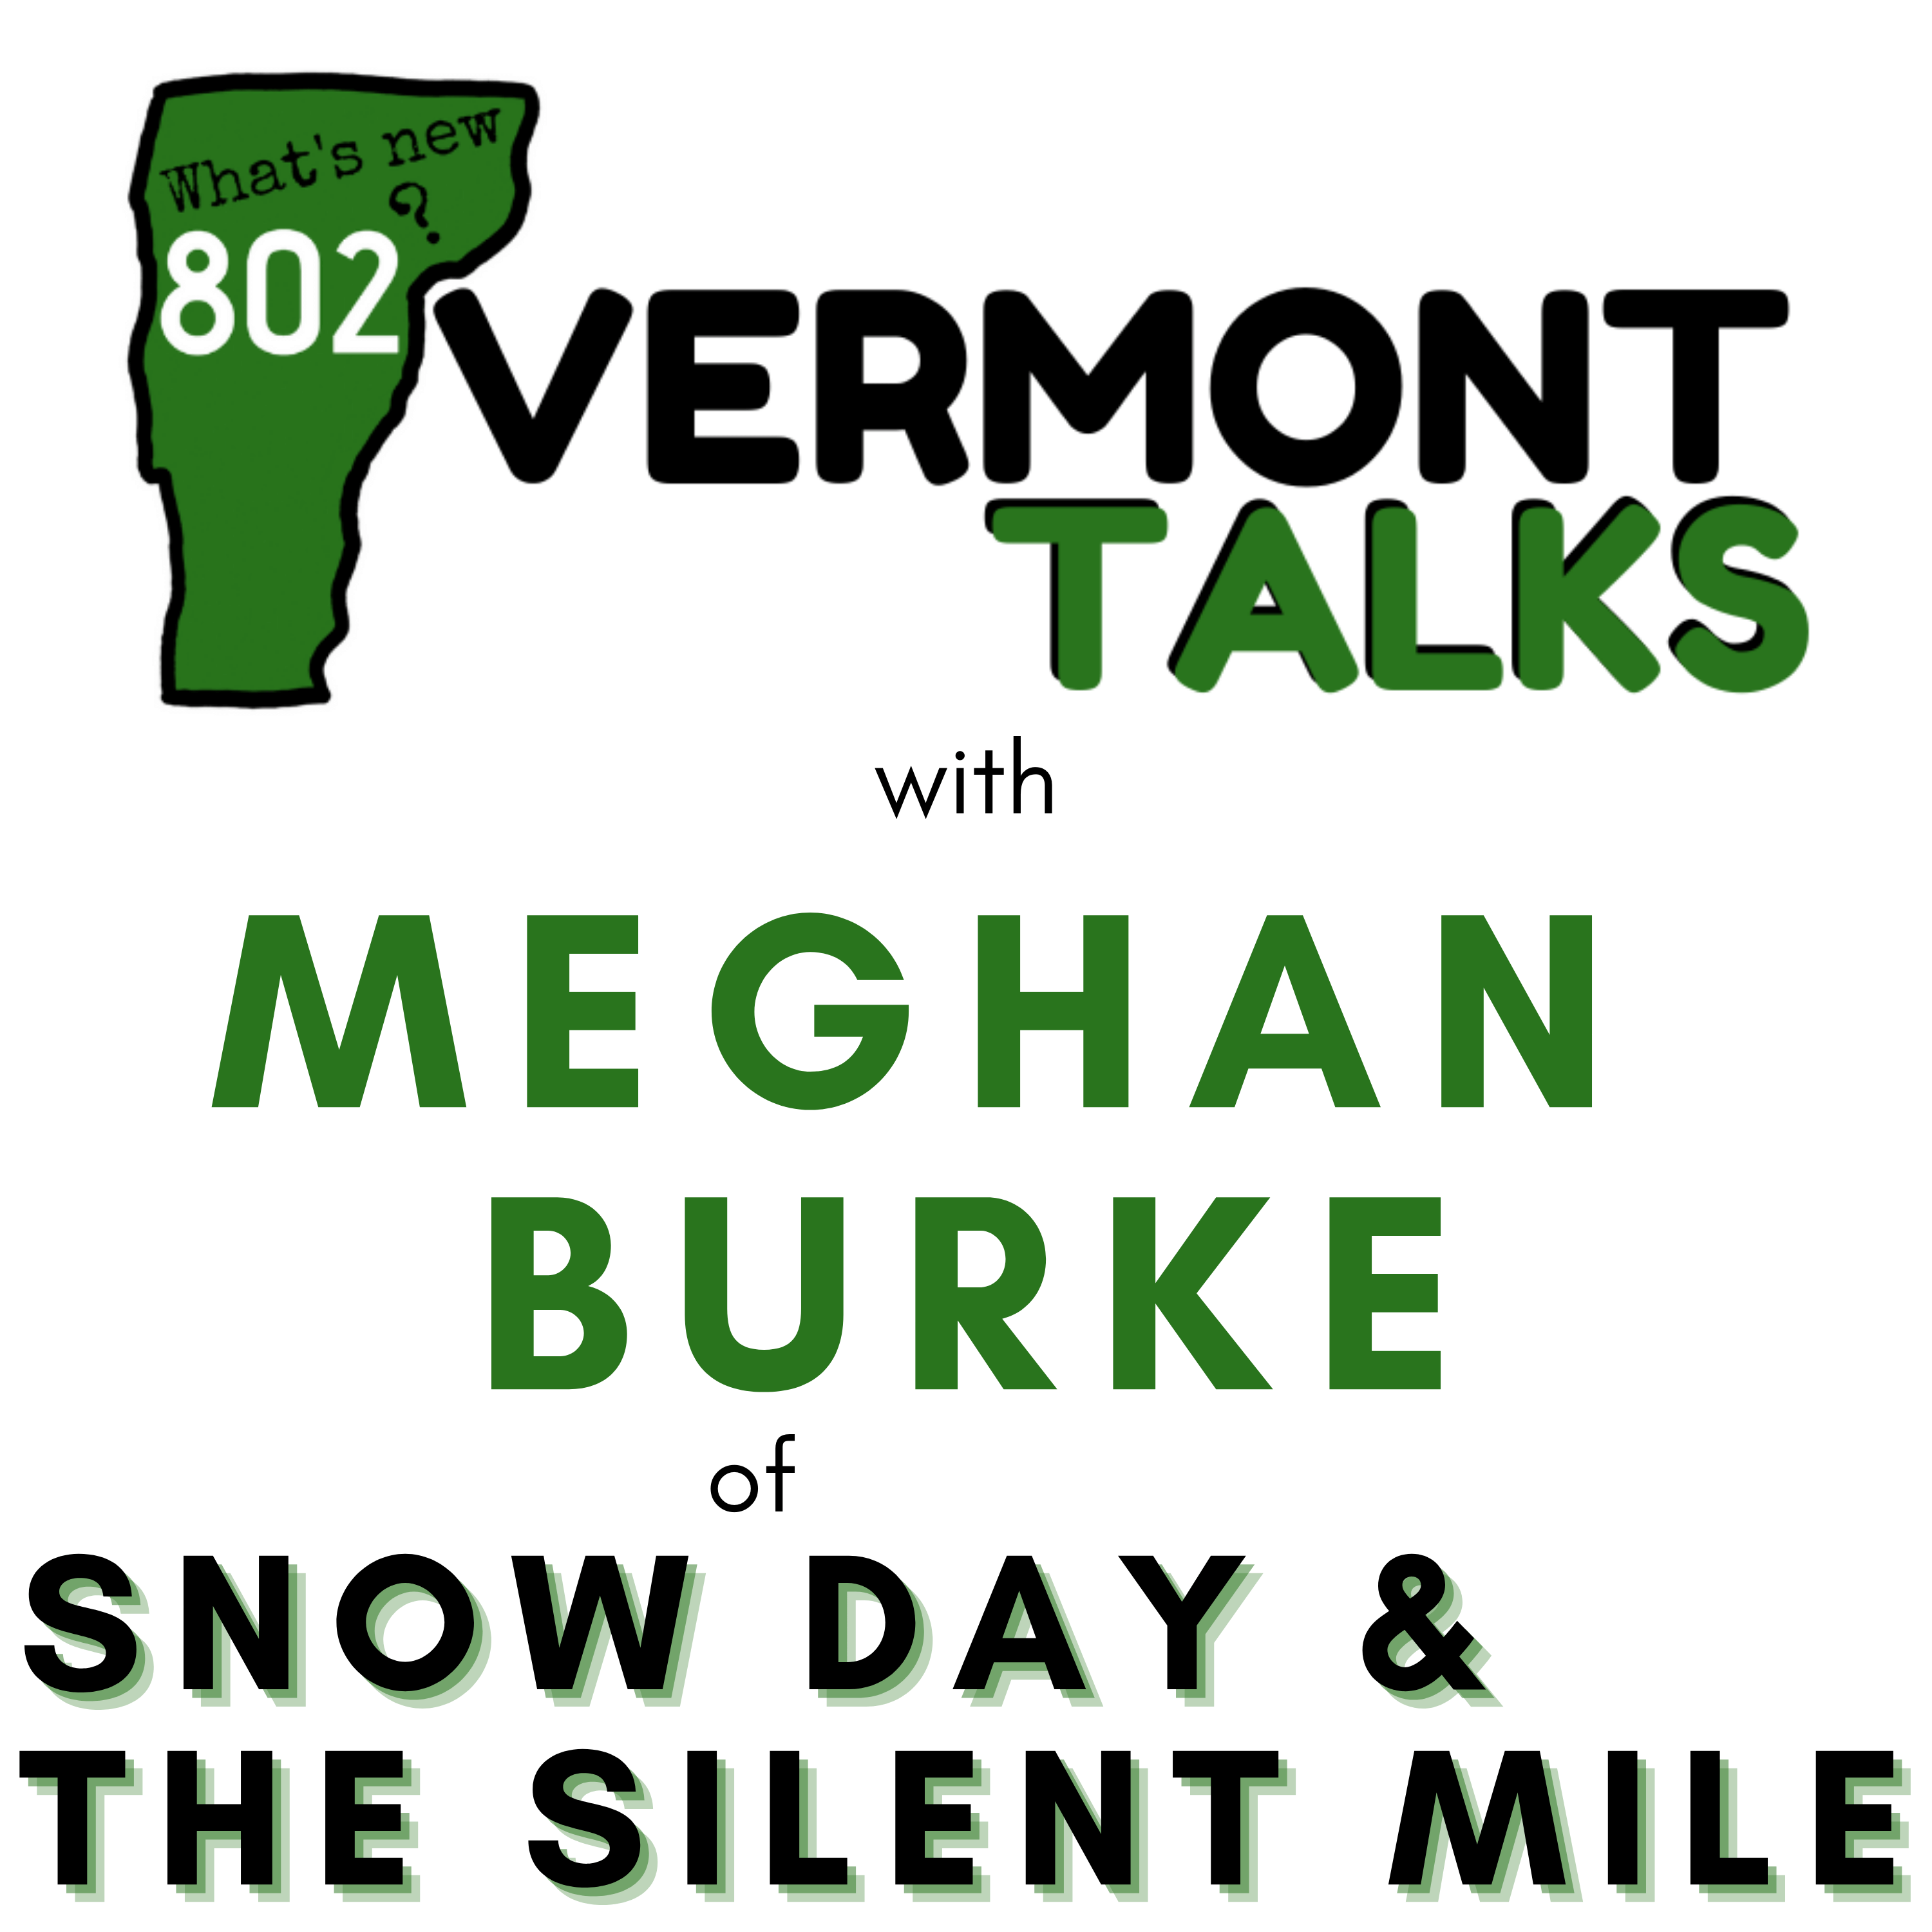 Talking with Meghan Burke of Snow Day and The Silent Mile